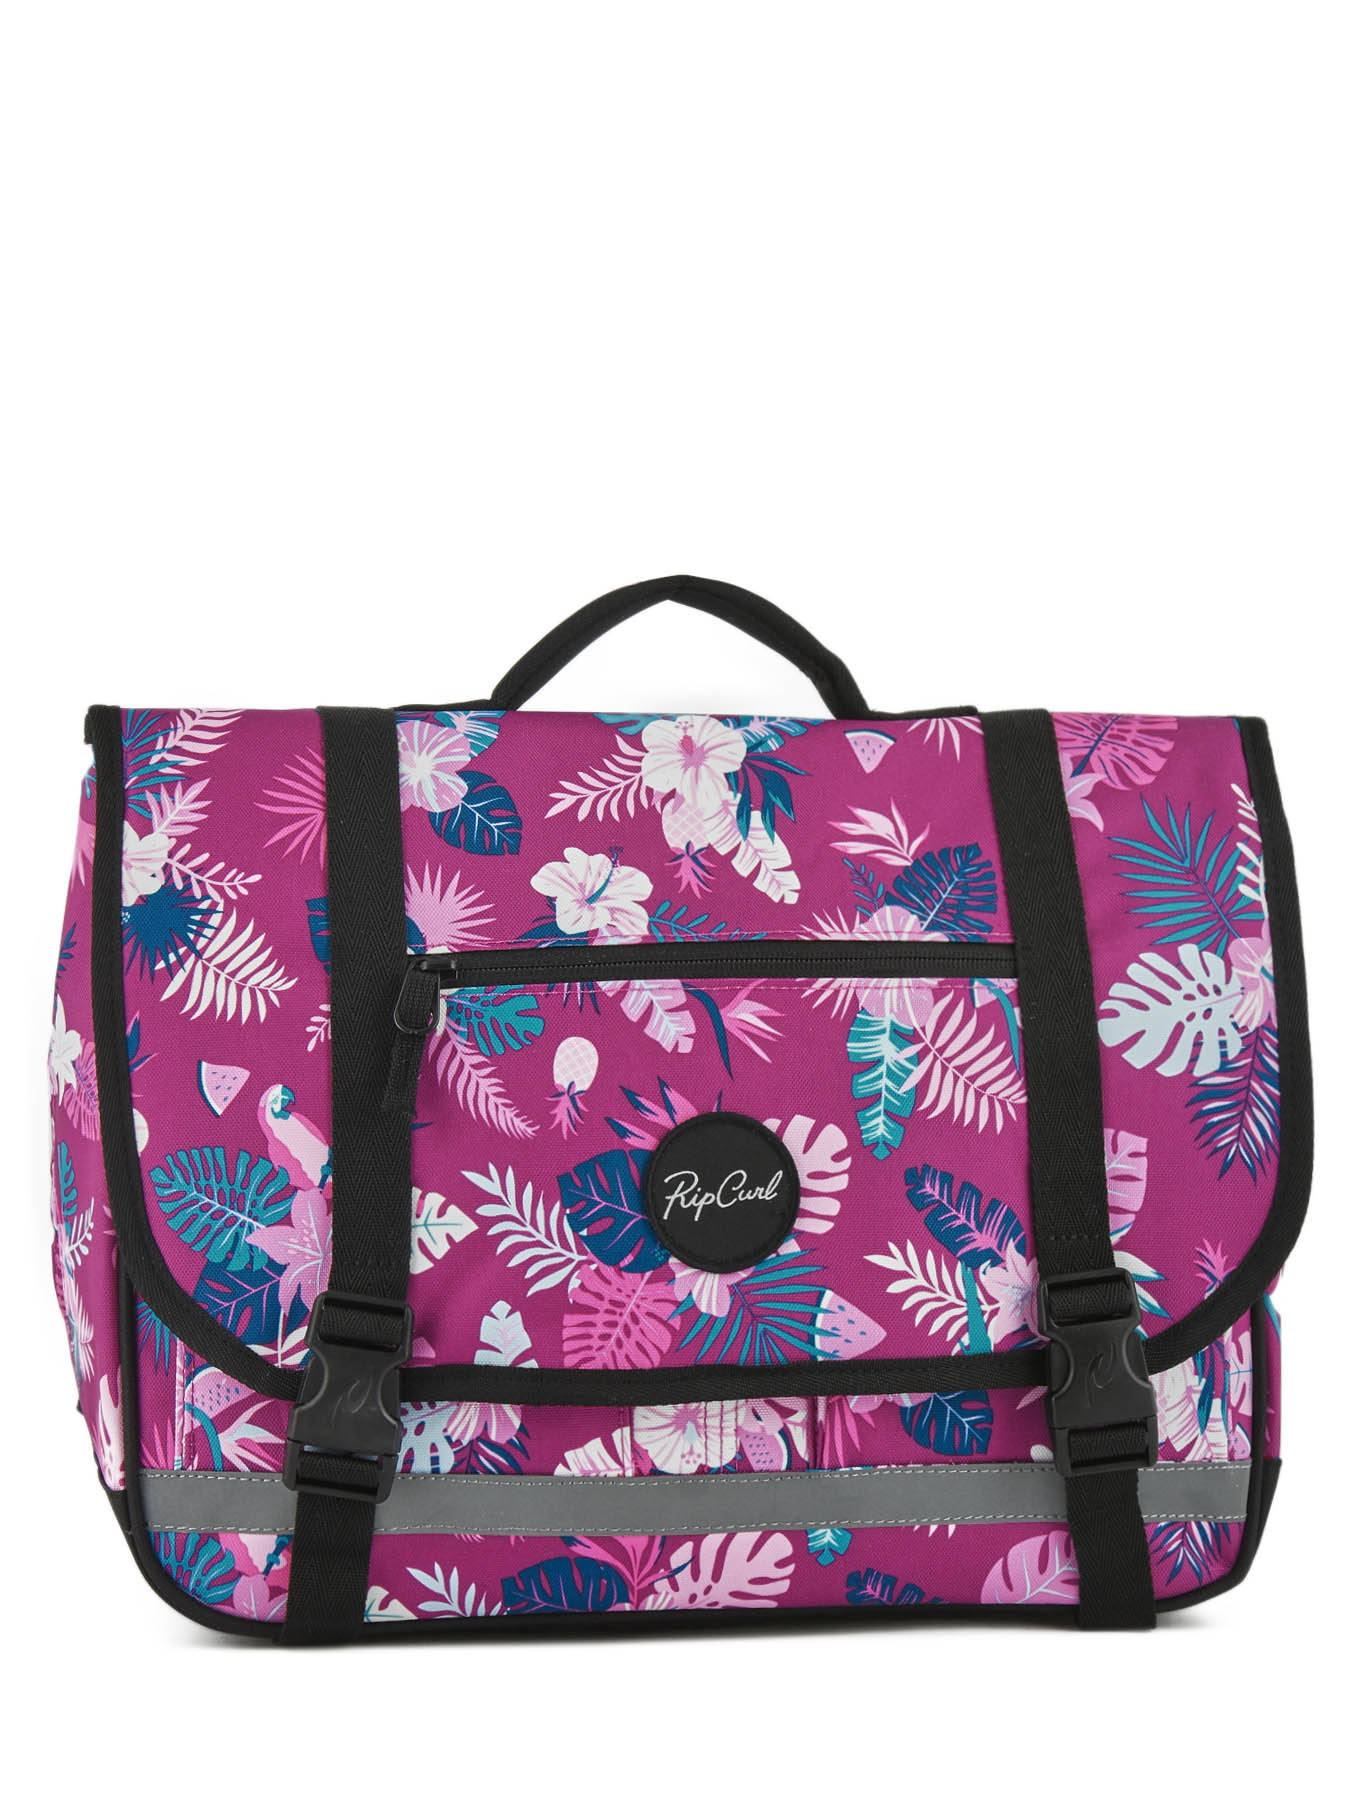 cartable rip curl fille